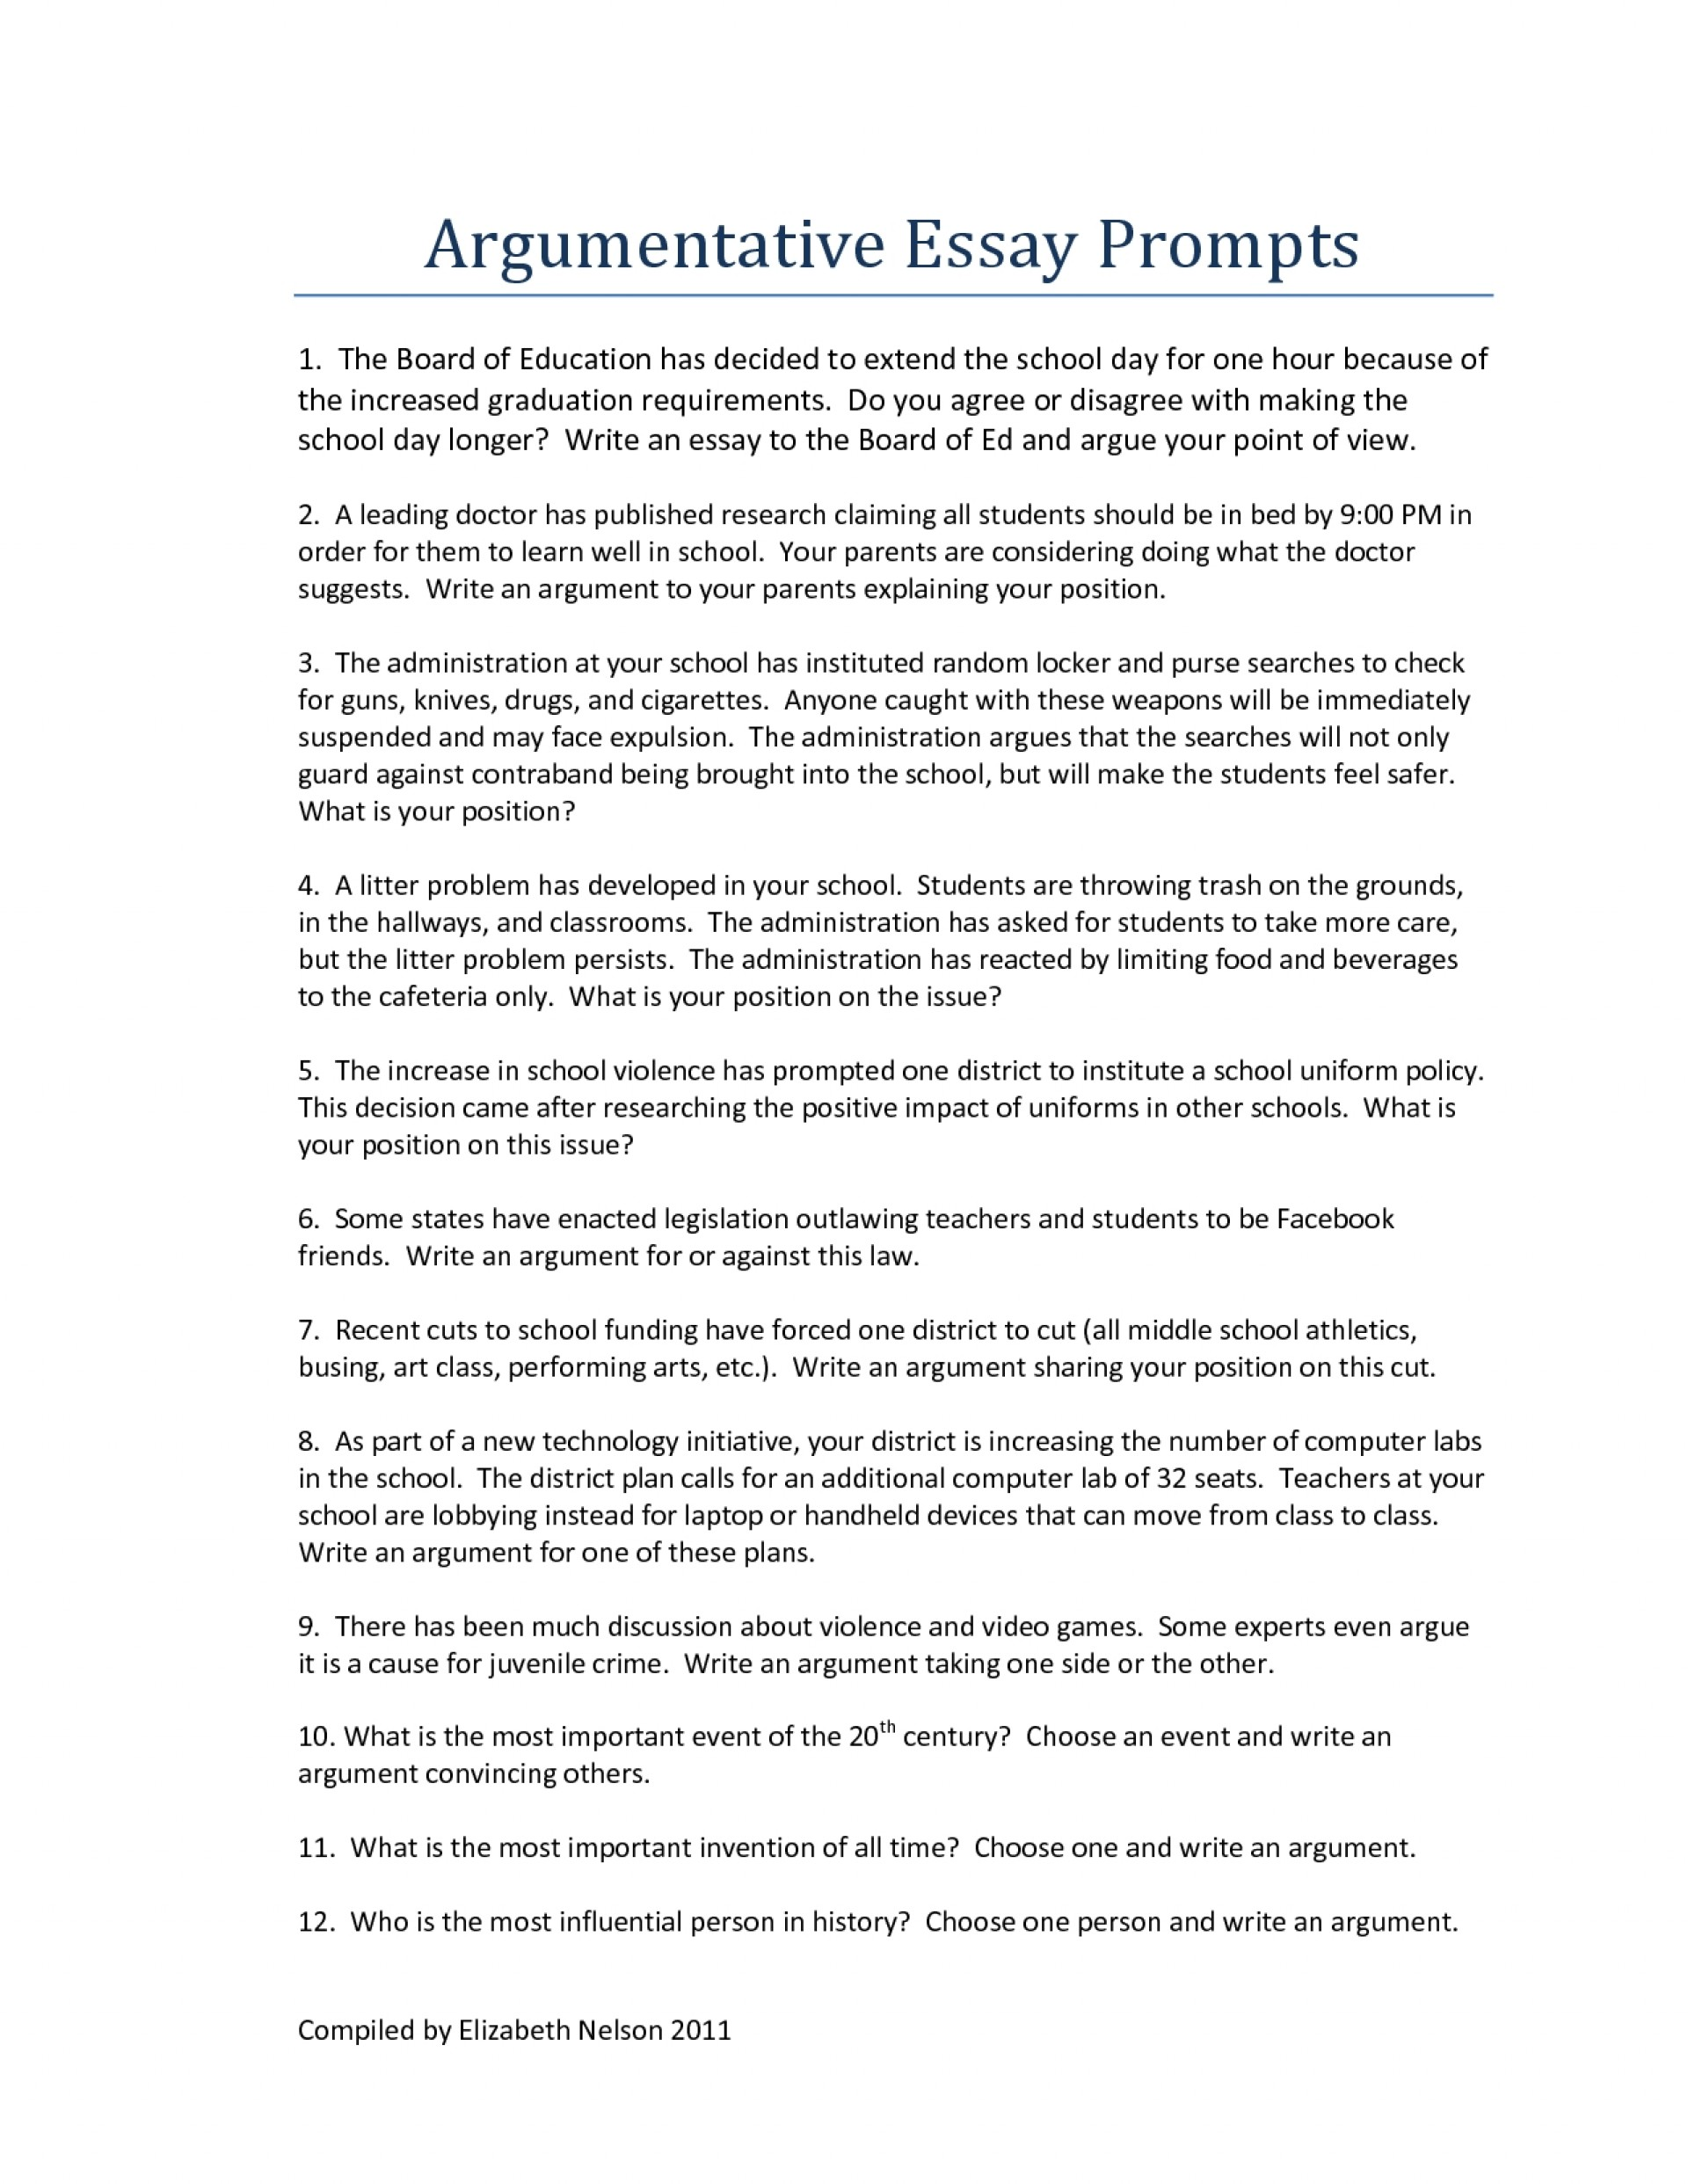 004 Topics For Argumentative Essays Essay Example Middle School Writings And Good Persuasive High Argument Speech About Uniform Education Uniforms Rules Incredible Grade 7 College Students Easy Sample 1920